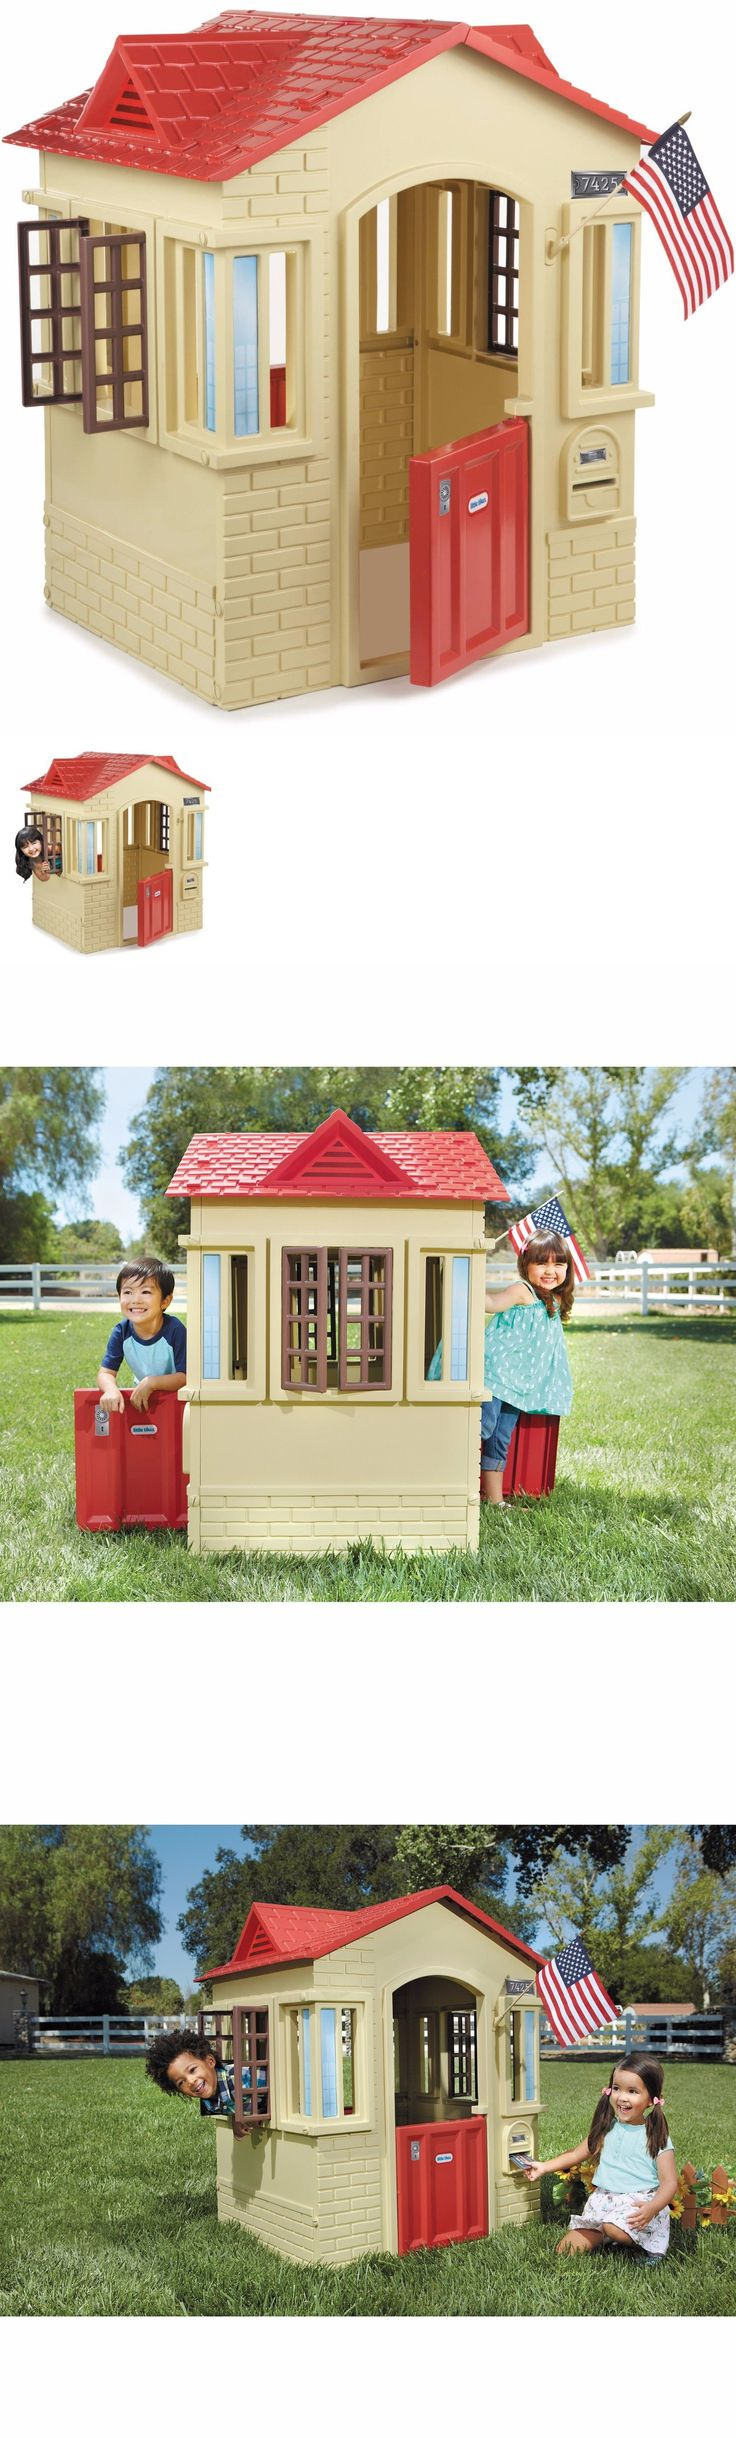 Permanent Playhouses 145995: Children Outdoor Play House Kids Plastic Playhouse Tan Cottage Toddler Indoor -> BUY IT NOW ONLY: $120 on eBay!